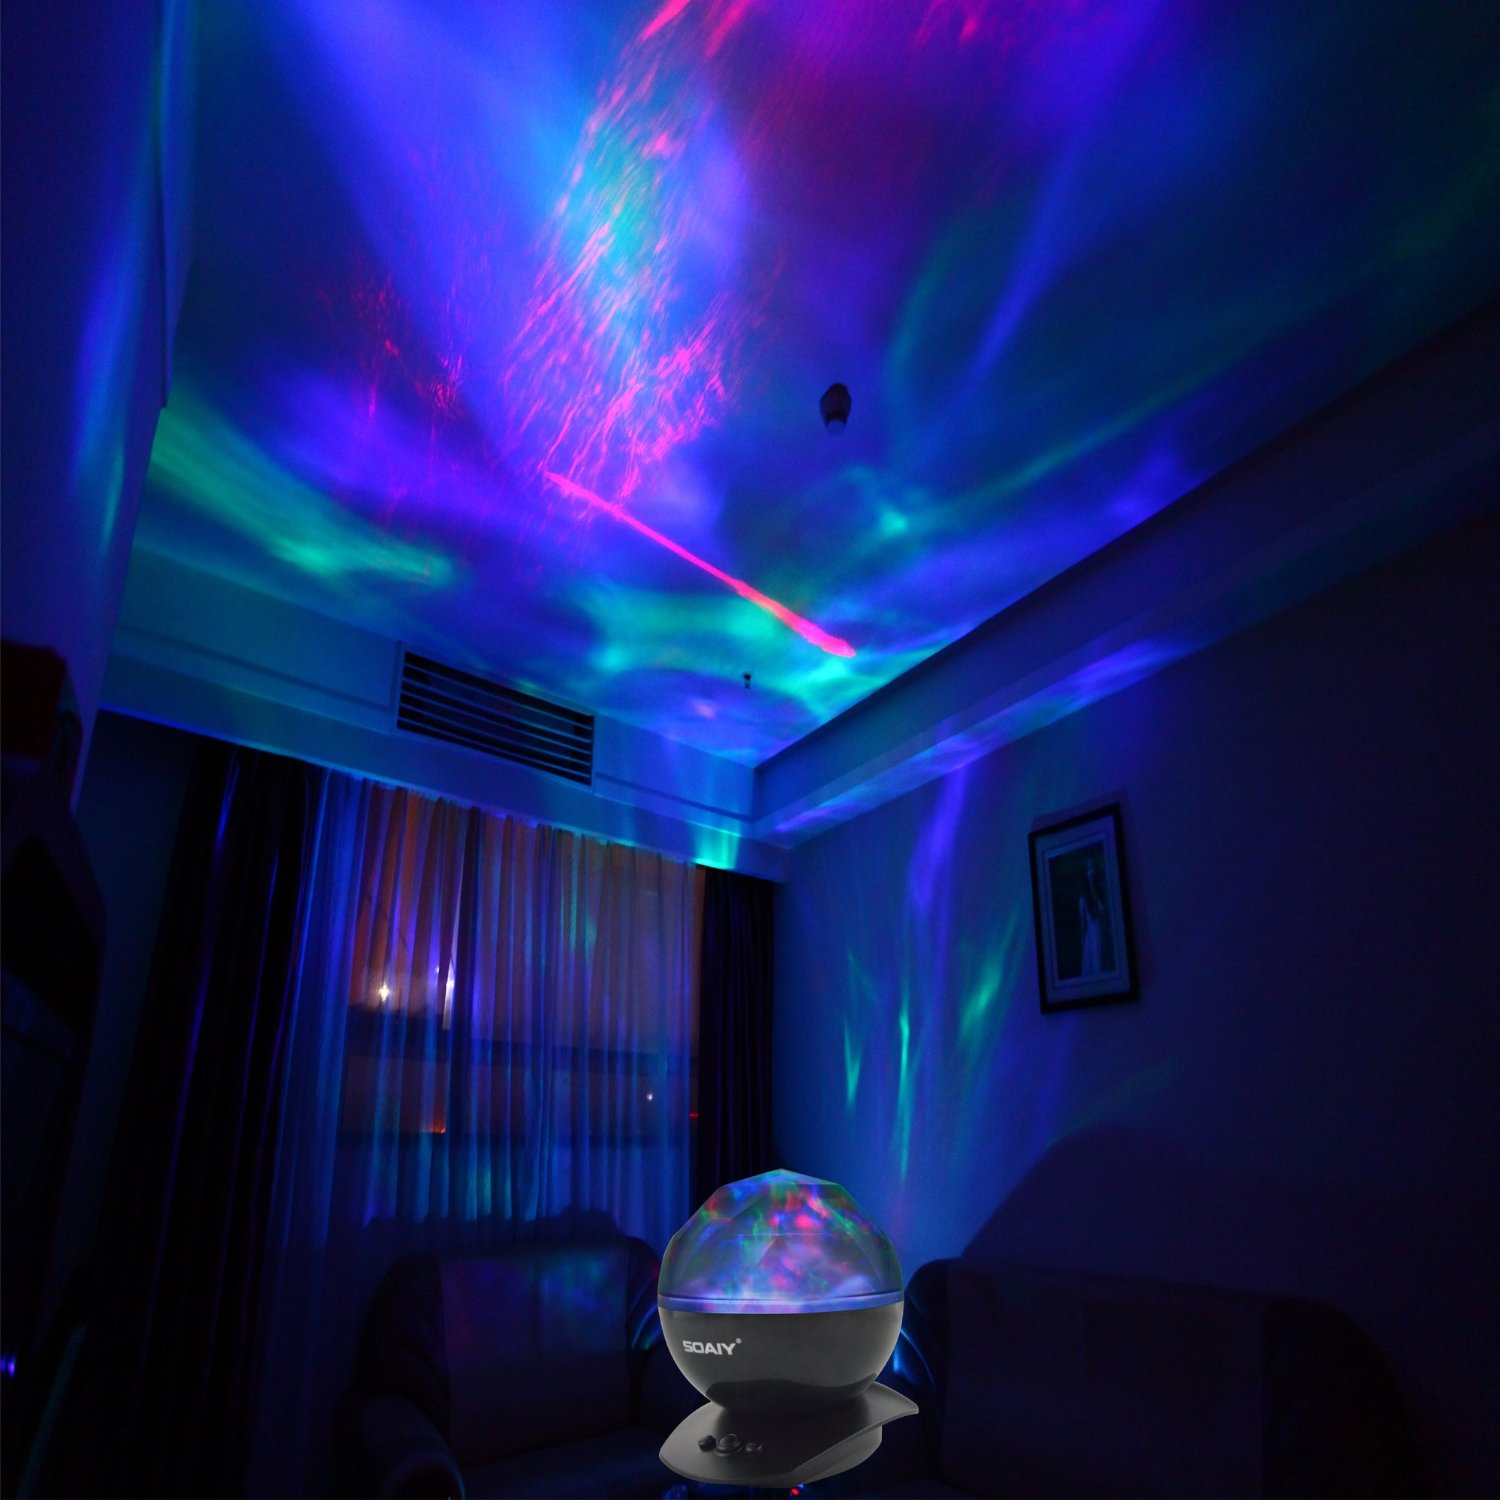 Light Projector Soaiy Night Light Projector Aurora Ocean Weave Projector For Baby Kids Children Adults Christmas Rotating Star Projector Led Night Light Lamp With